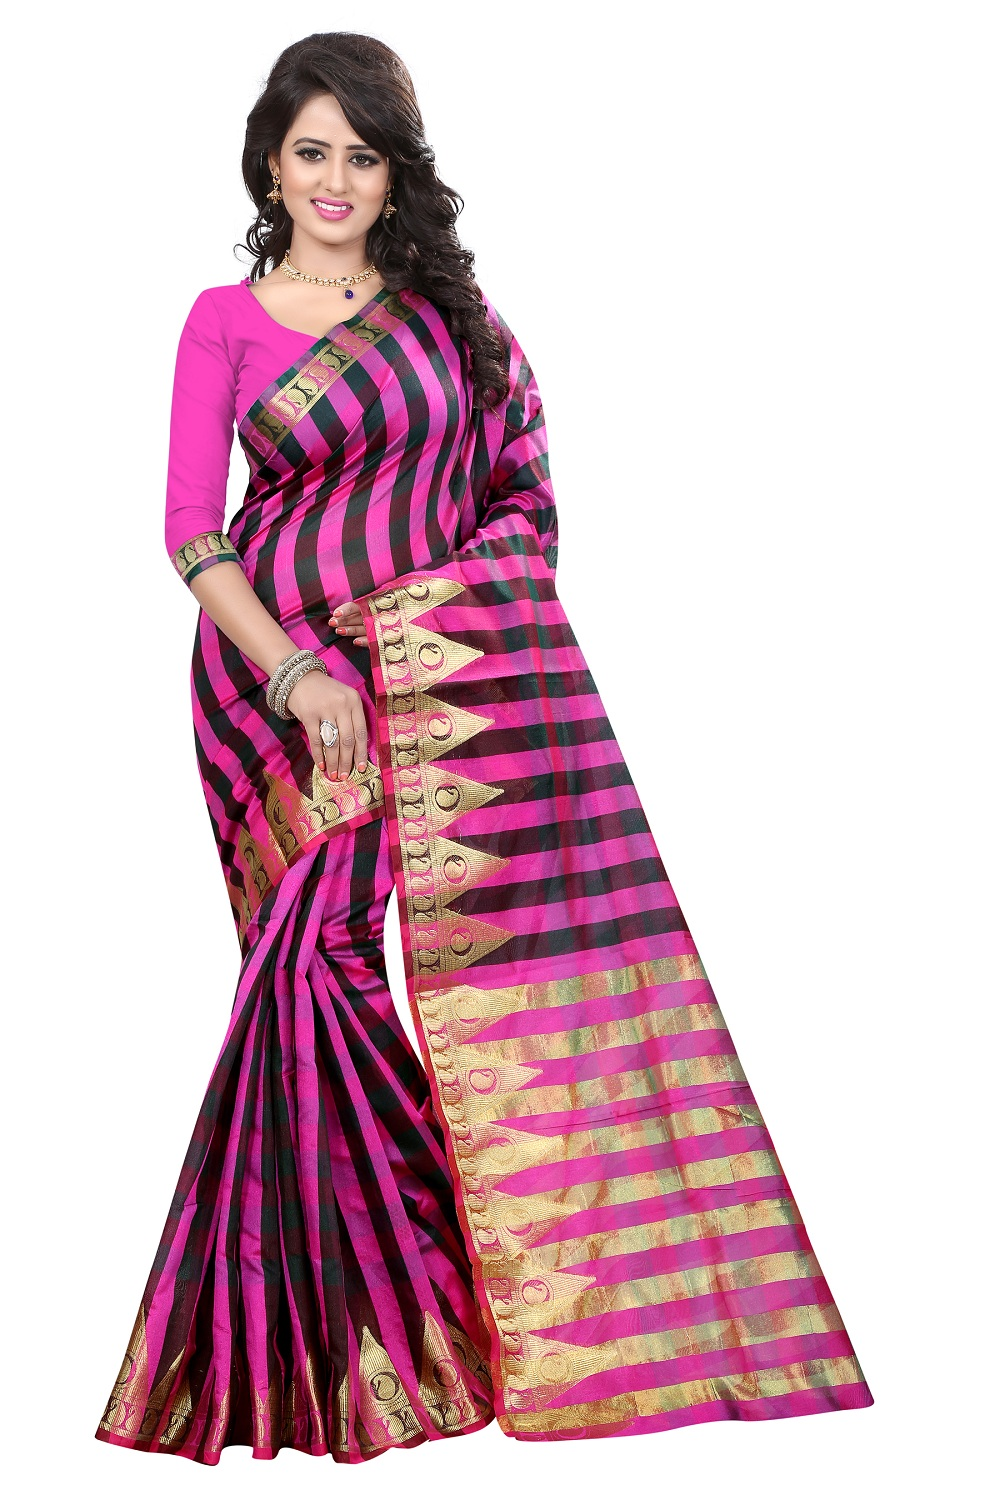 uniqueclub Density Collection Present Brand New Deisgner Pink  Colore  Cotton Silk Saree With Unstitched Blouse